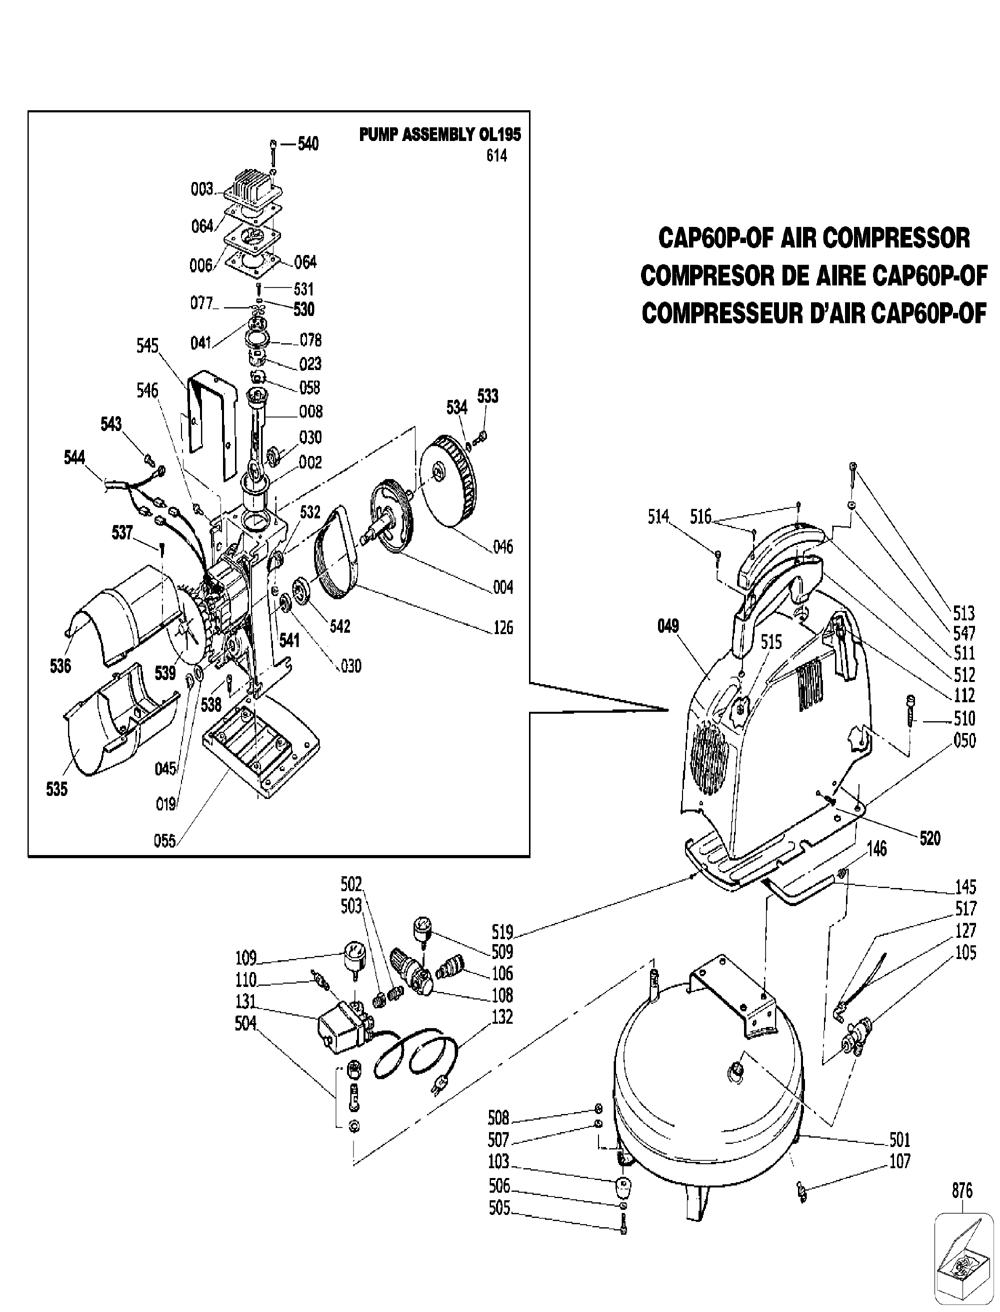 Wiring Diagram For Bostitch Air Compressor Daily Update Dewalt Parts